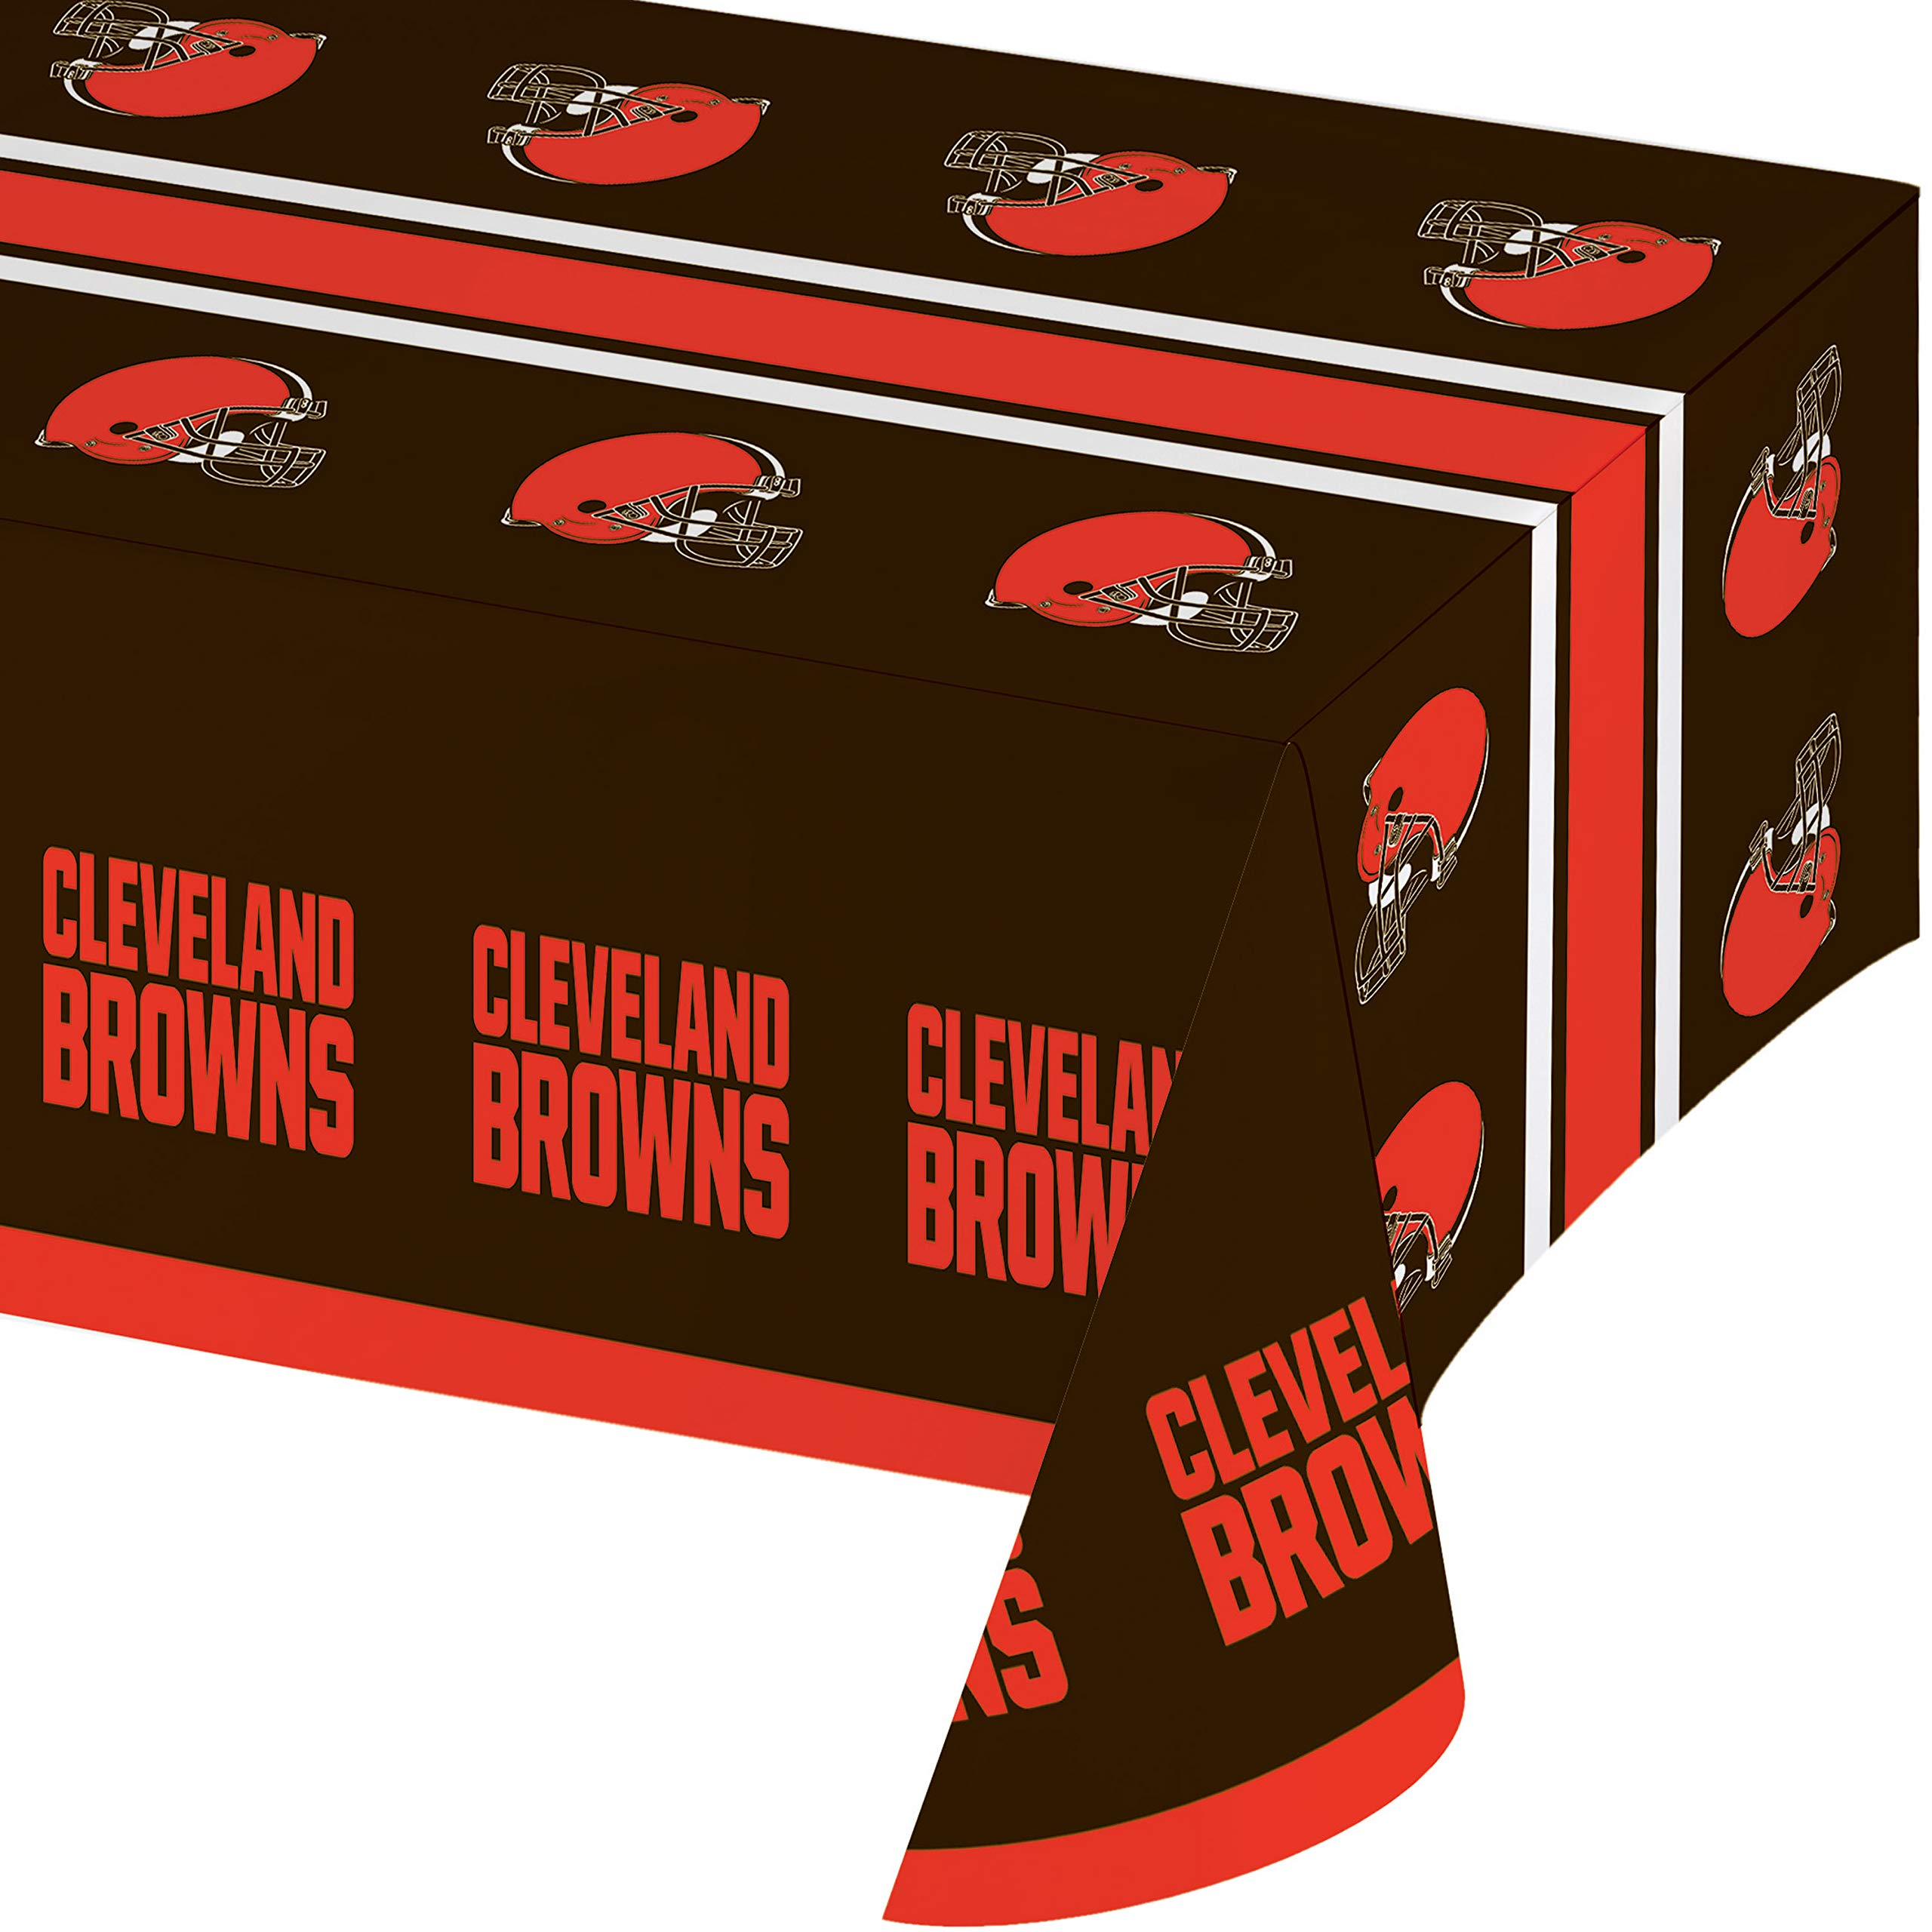 Cleveland Browns Plastic Tablecloths, 3 ct